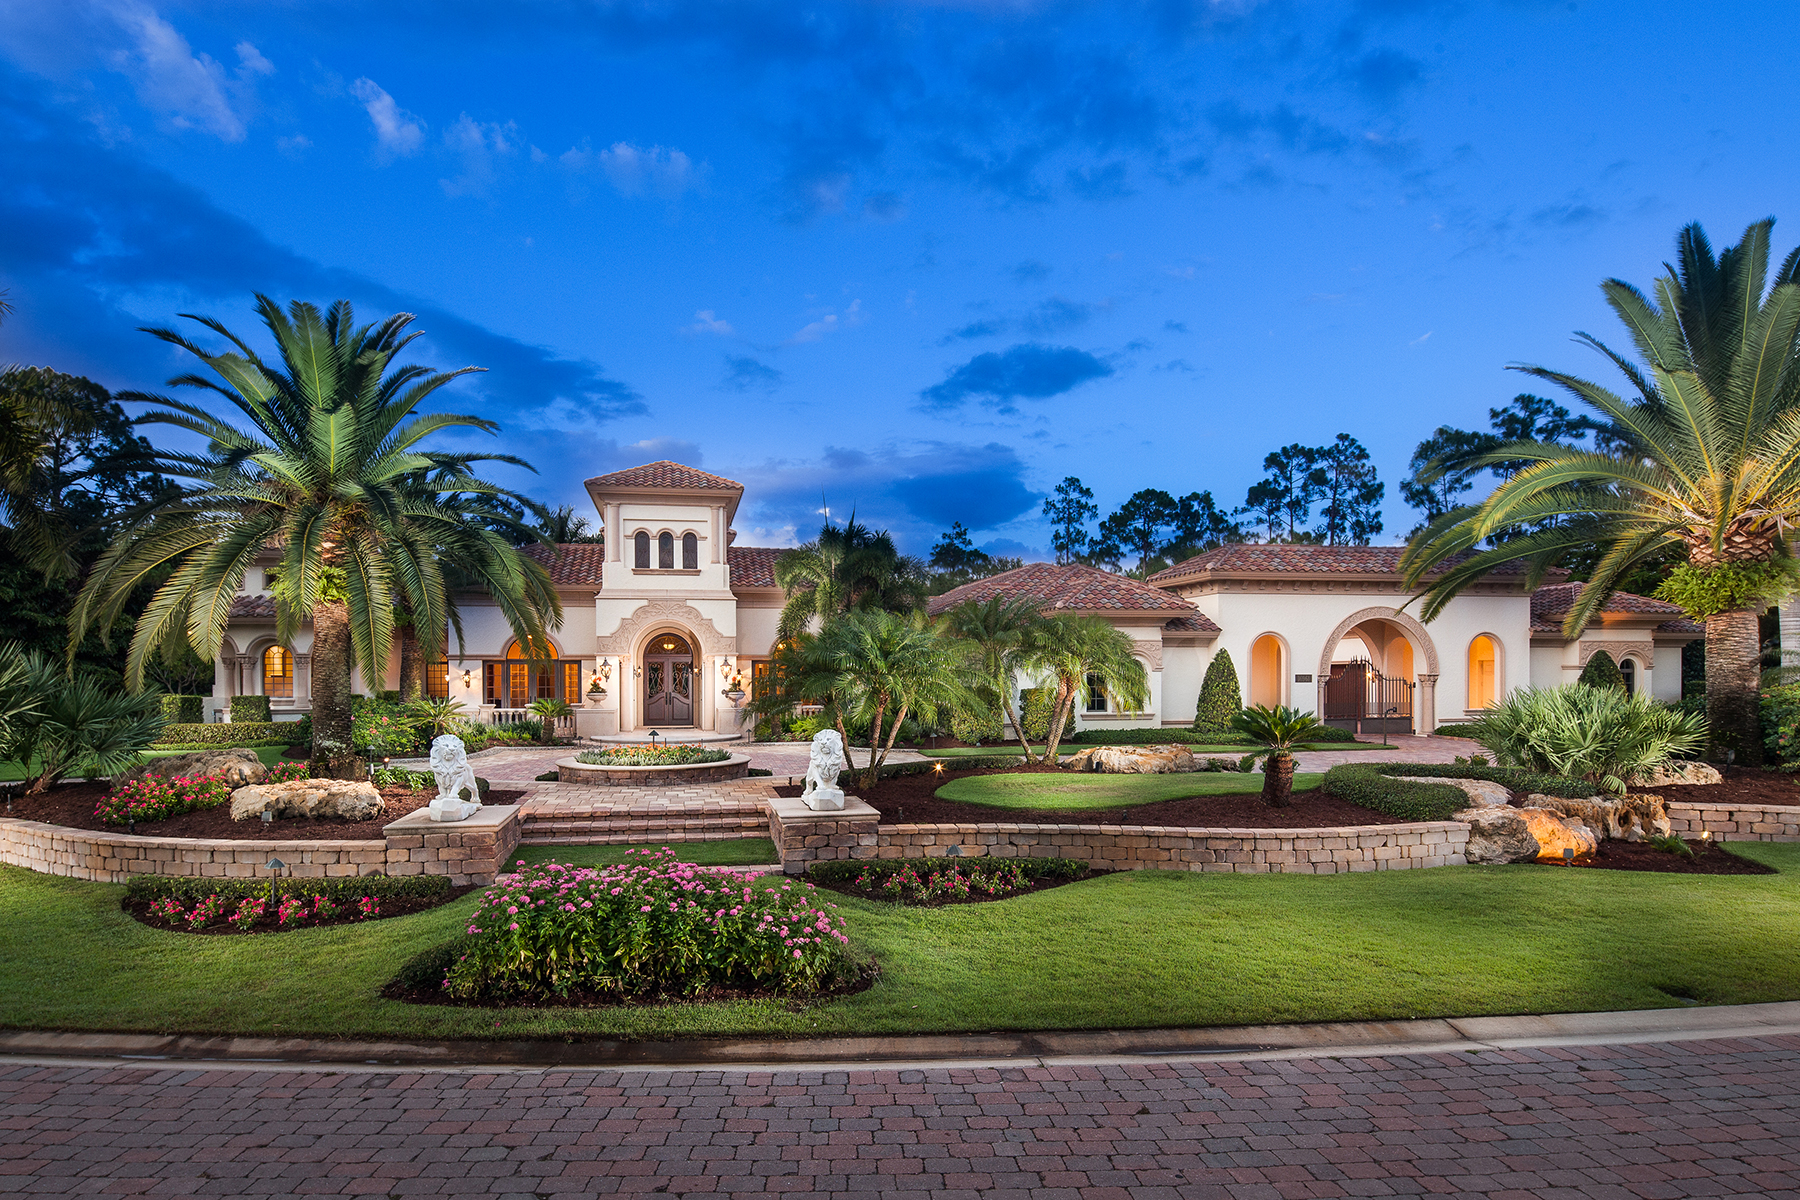 Single Family Home for Sale at MEDITERRA - VERONA 16961 Verona Ln Naples, Florida, 34110 United States